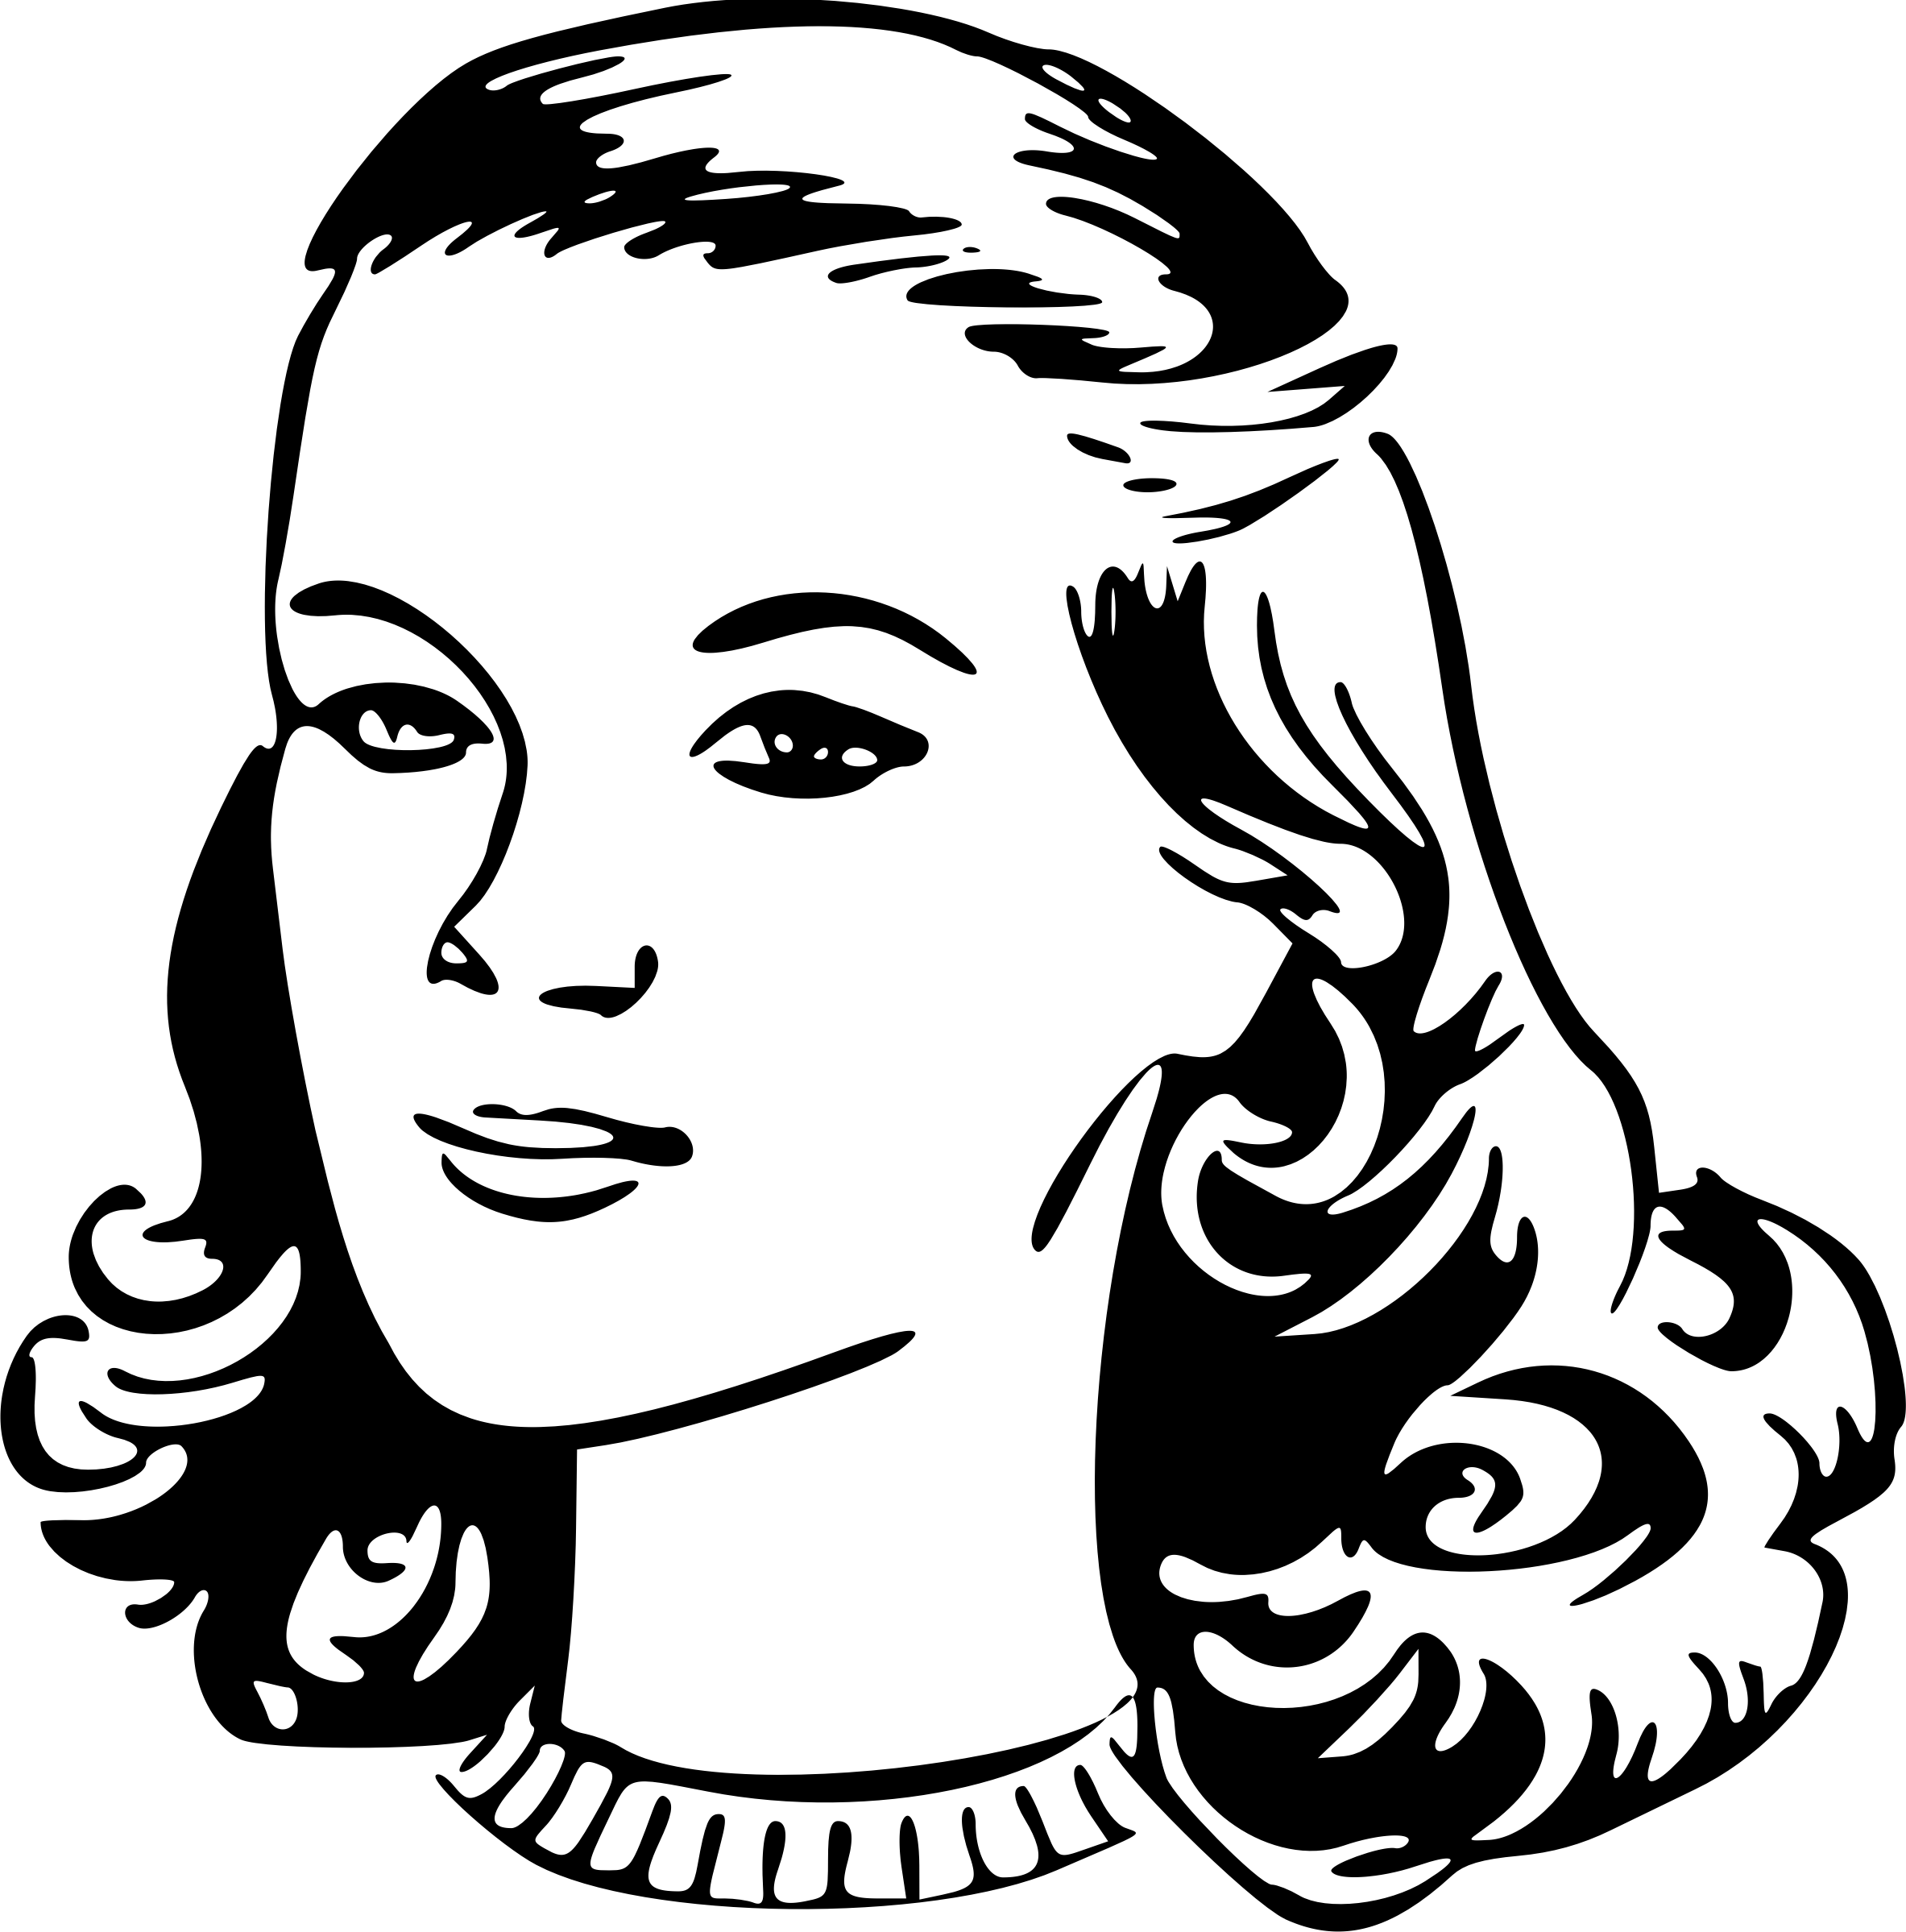 Clipart woman head image download Woman head clipart 2 » Clipart Portal image download